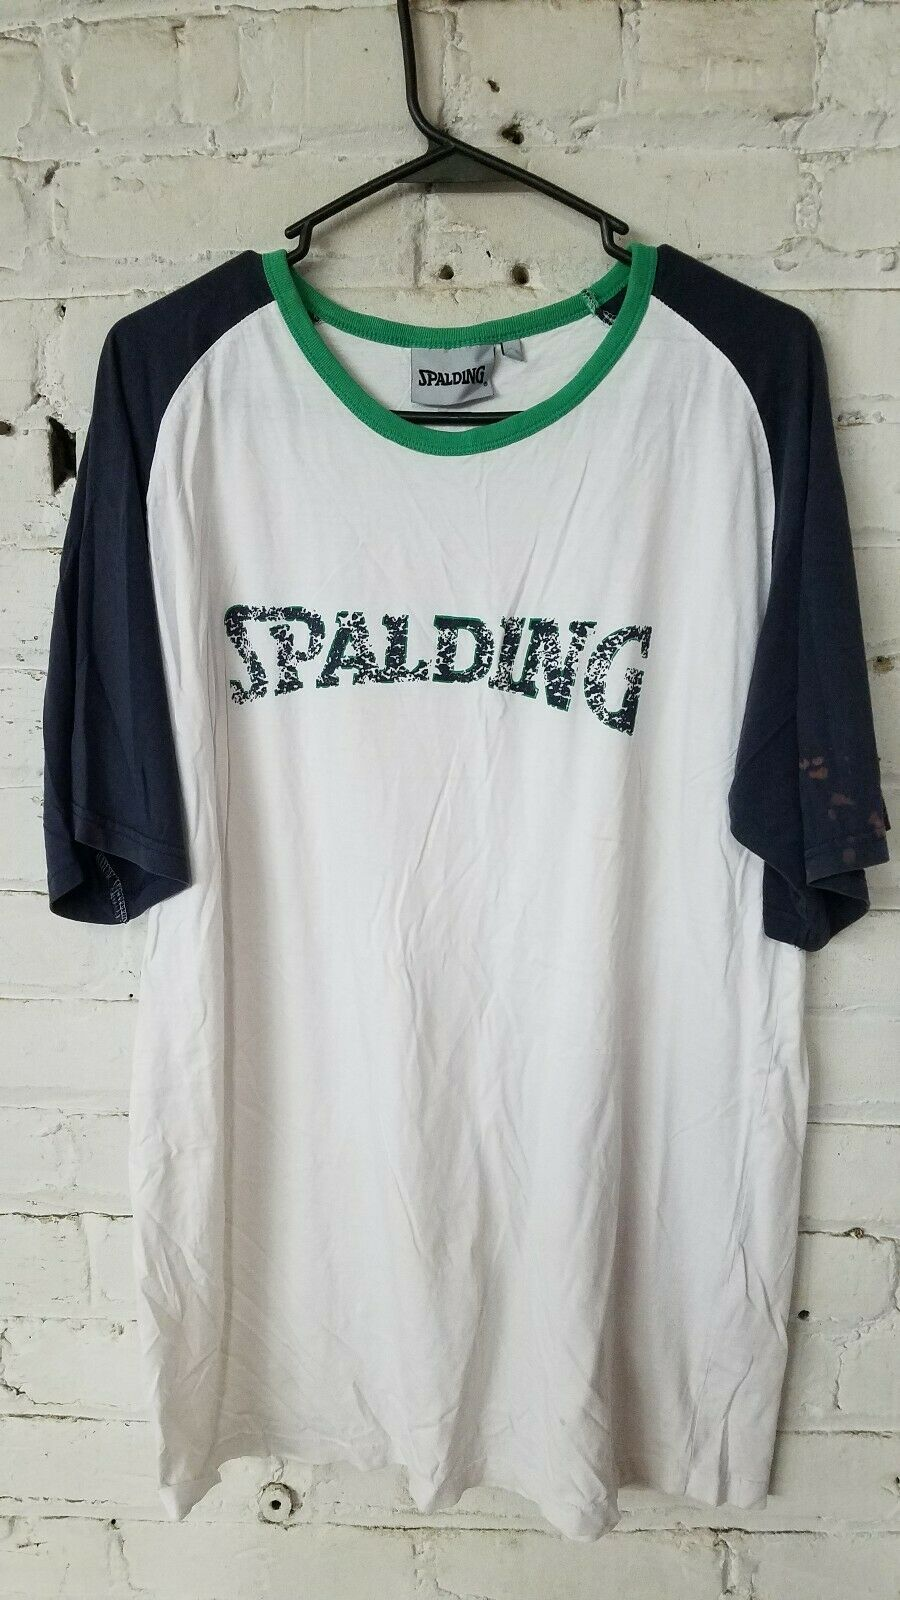 Rare Mens Spalding Ireland Limited Short Sleeve T-shirt White with bluee Size XL